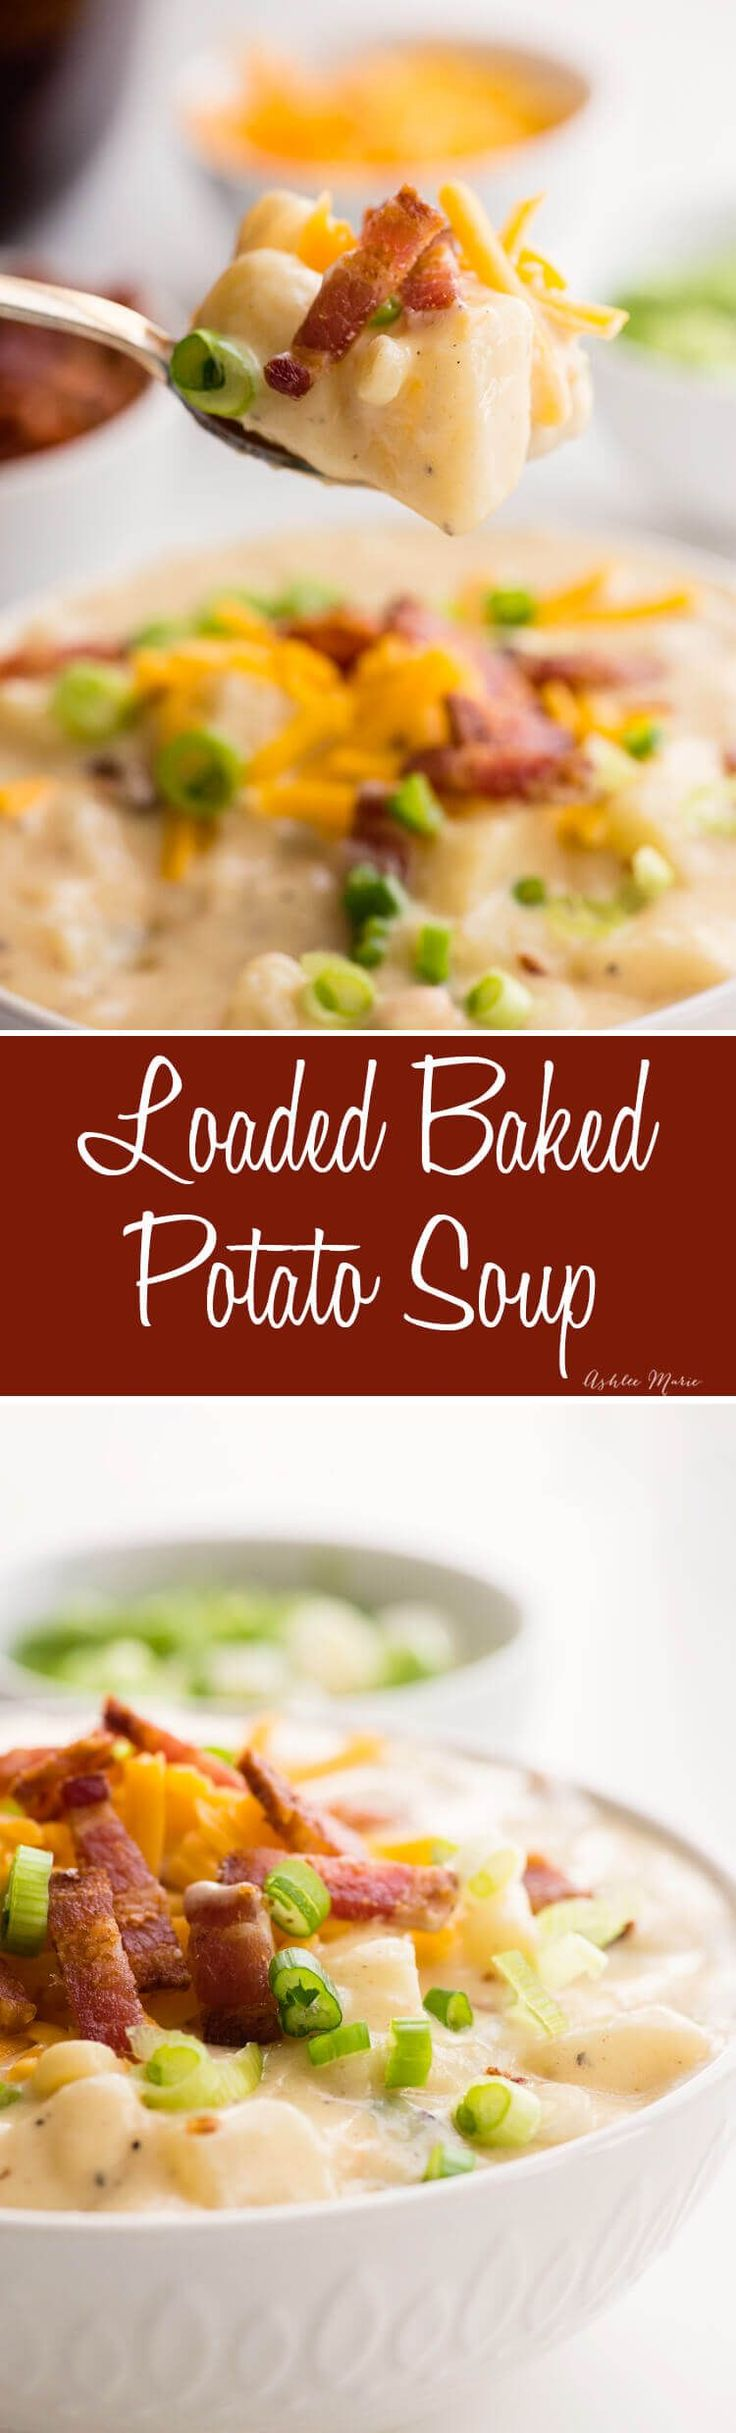 One Pot Loaded Baked Potato Soup Creamy Rich And Filling The Perfect Comfort Food Soup